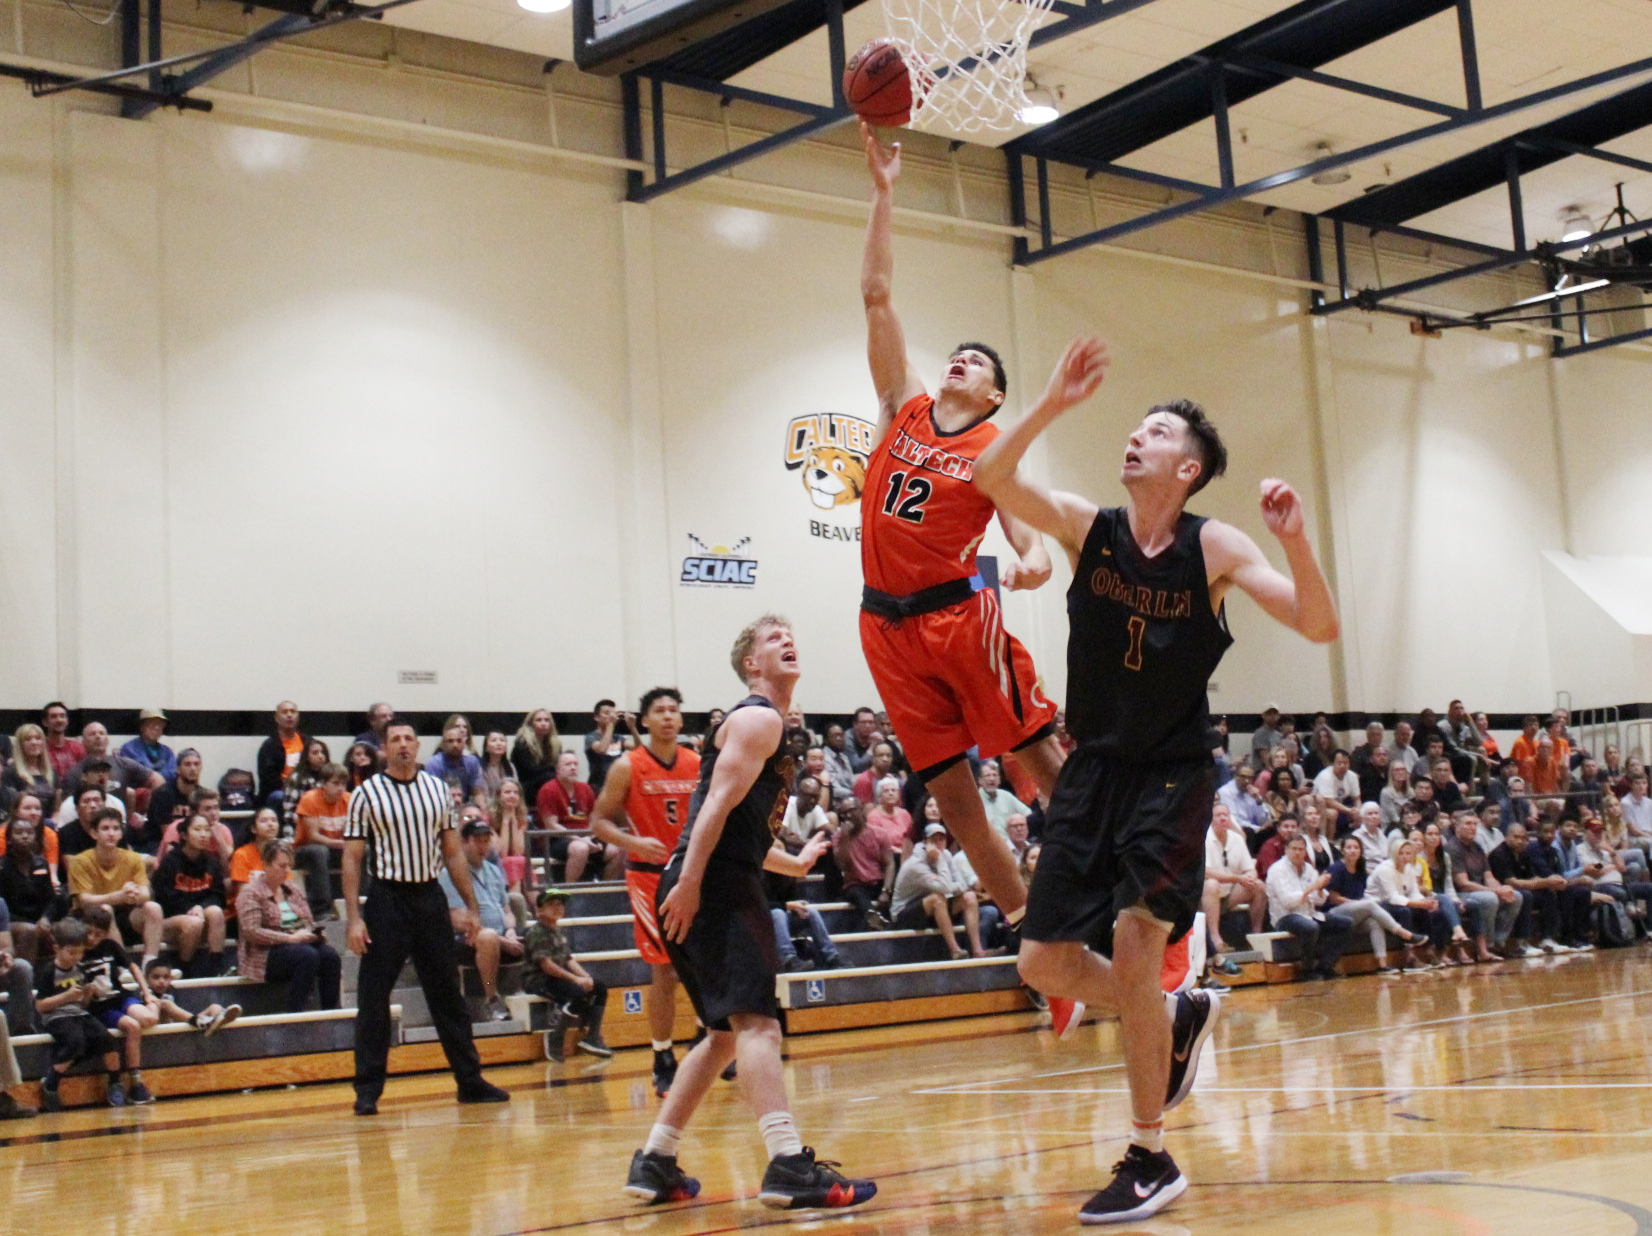 Men's Basketball Rallies, Stuns Carleton